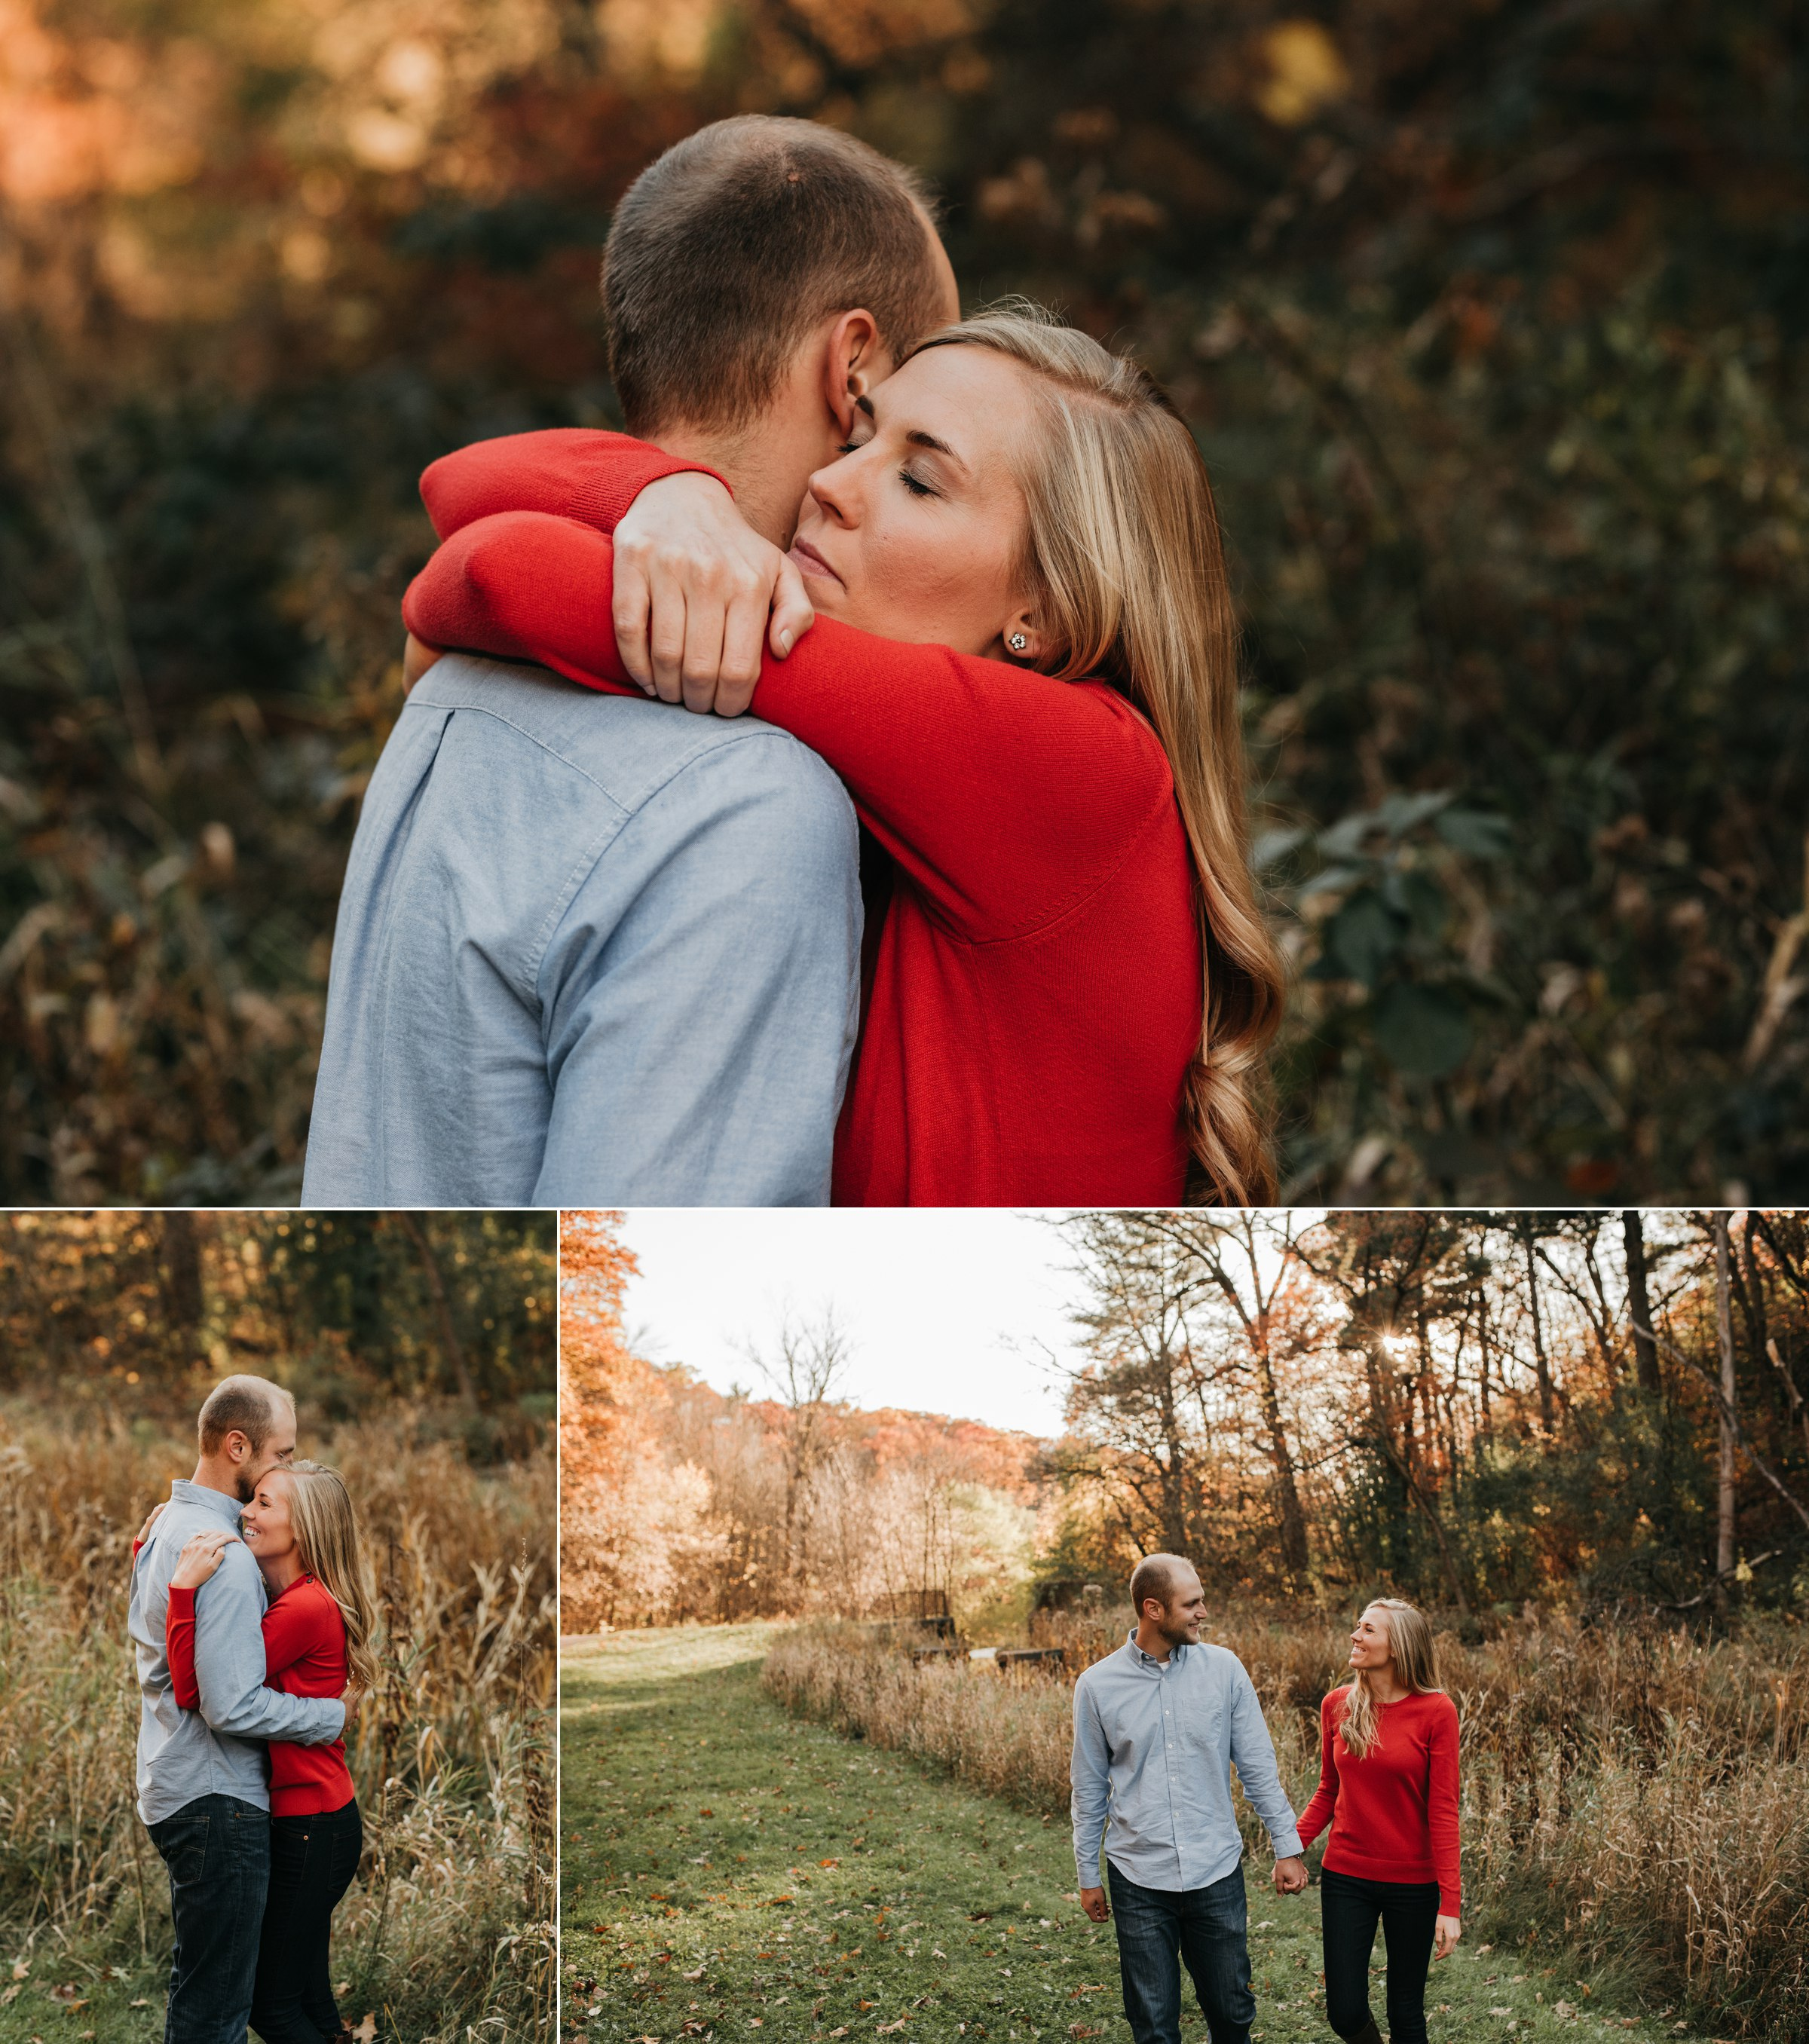 caroline and taylor minneapolis minnesota texas austin dallas houston wedding elopement destination intimate adventurous couple best photographer_0022.jpg